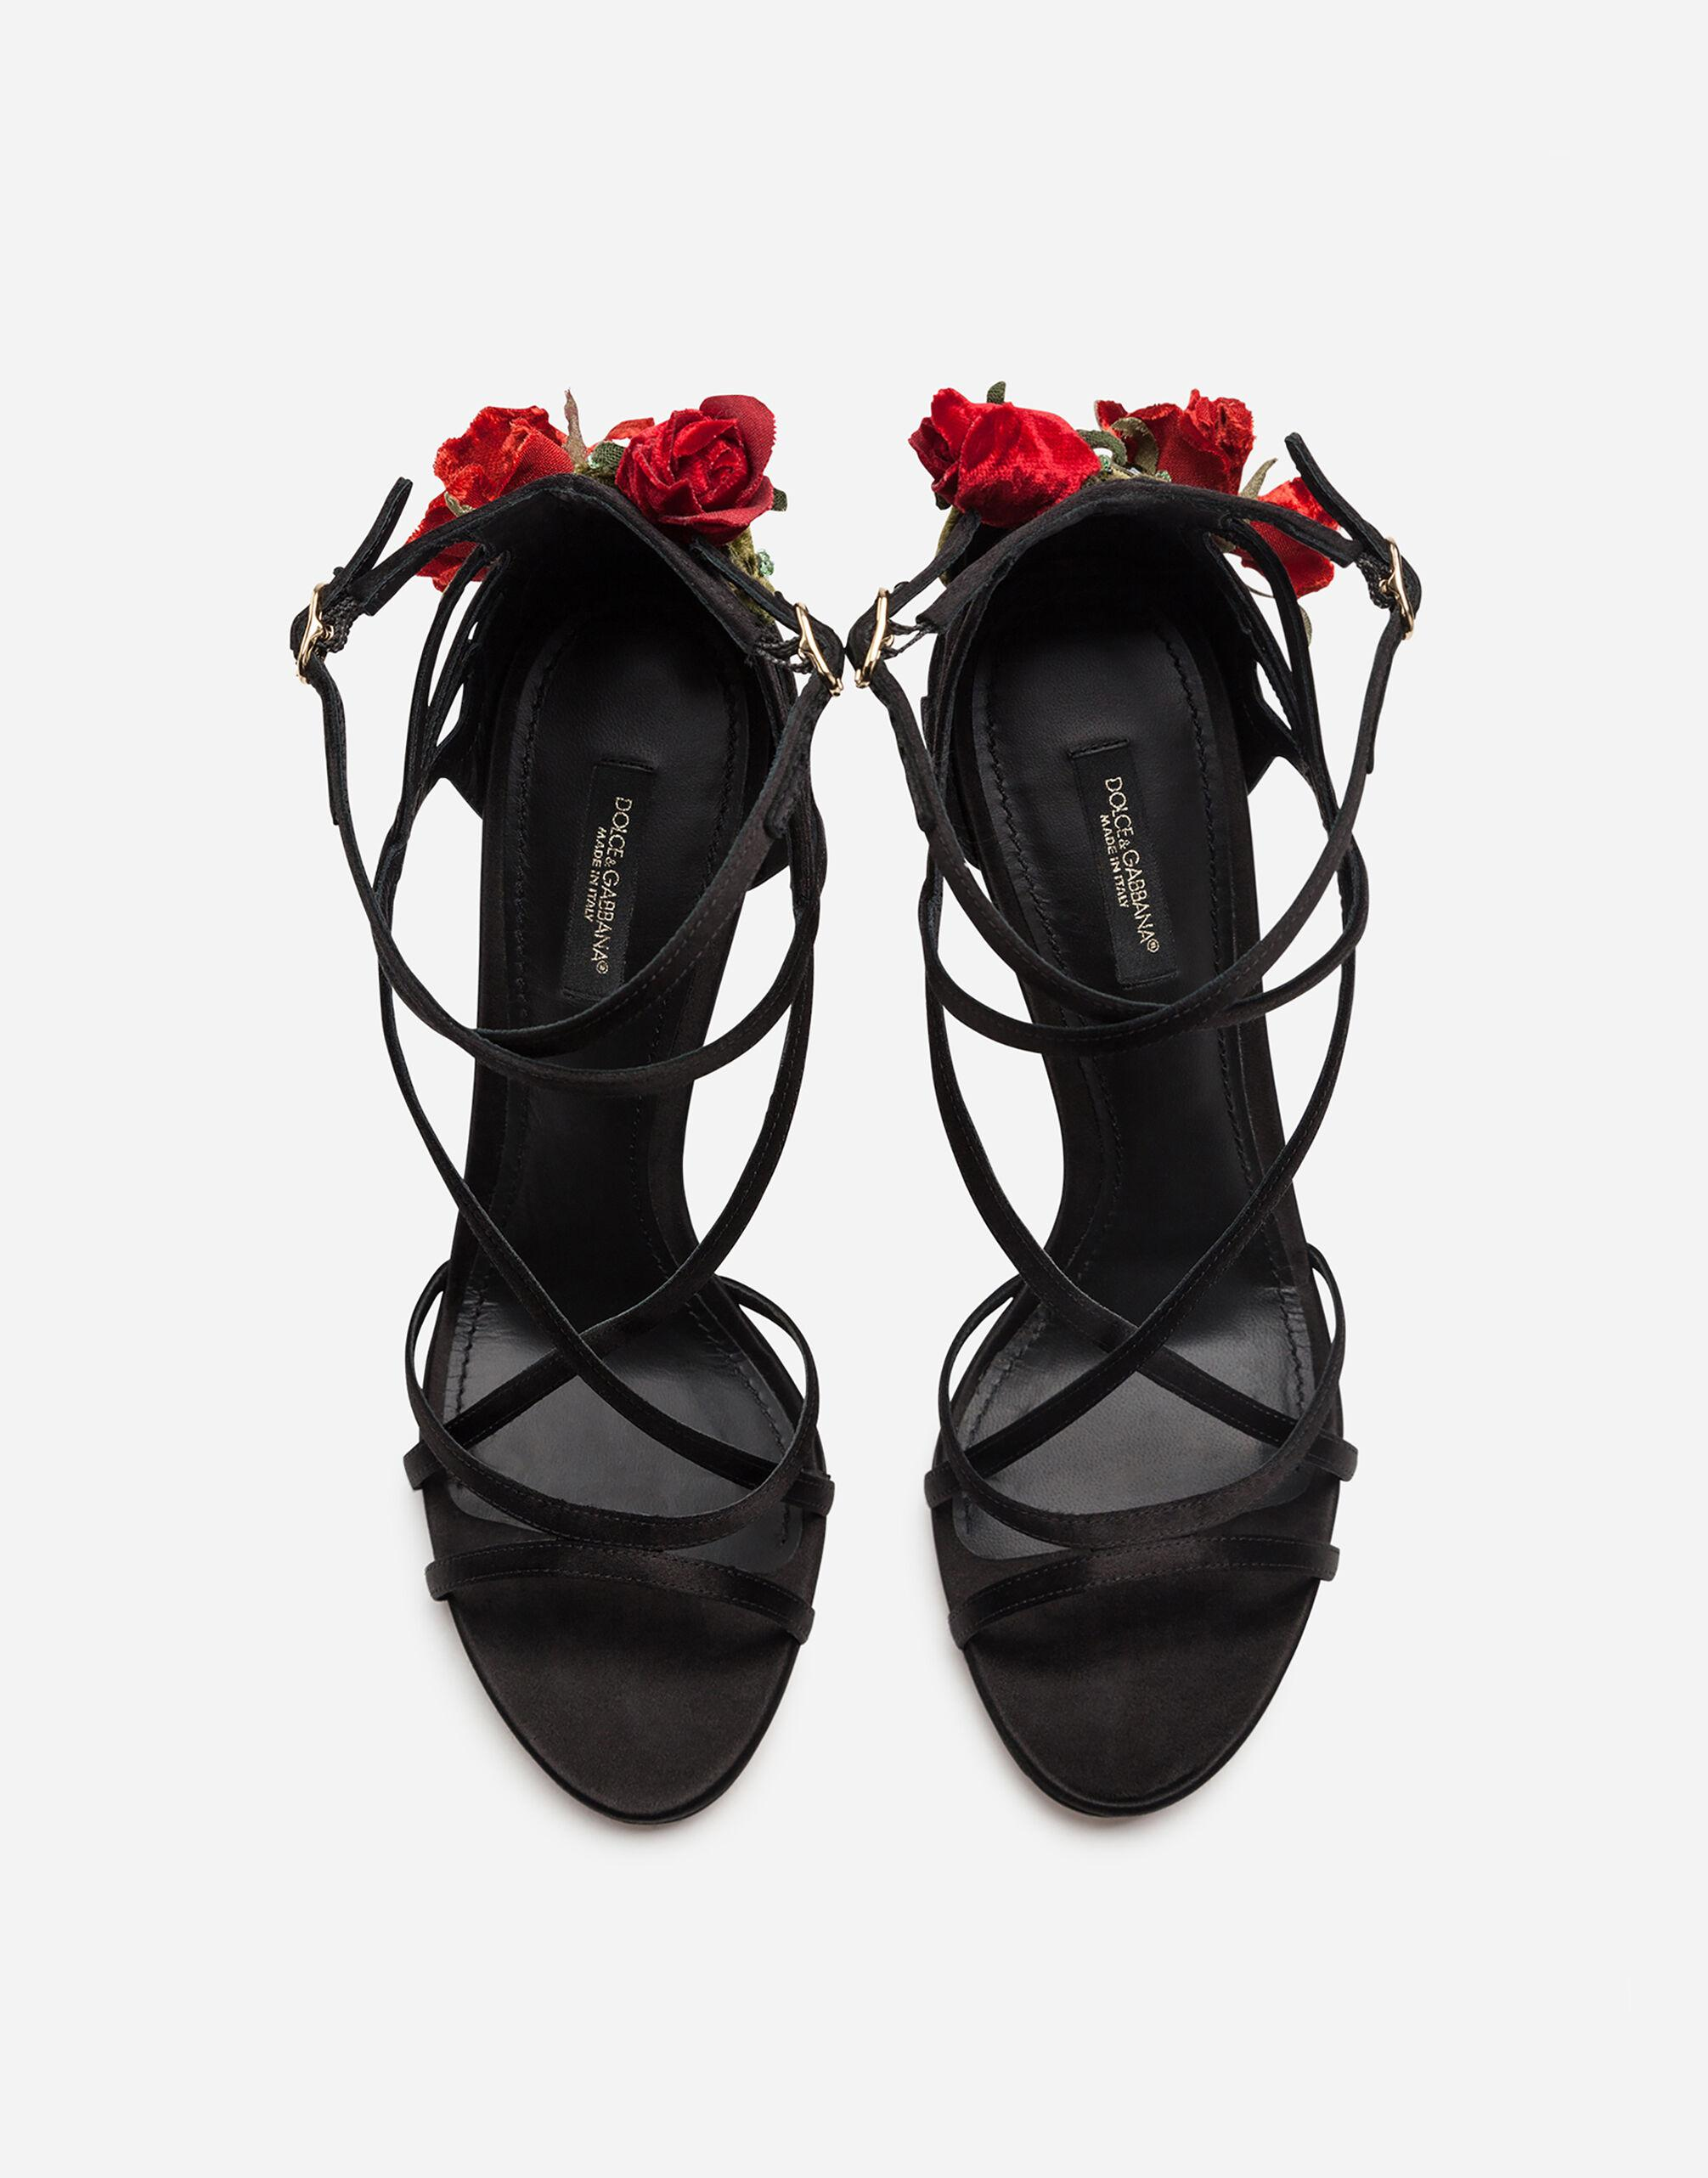 Satin sandals with embroidery 3